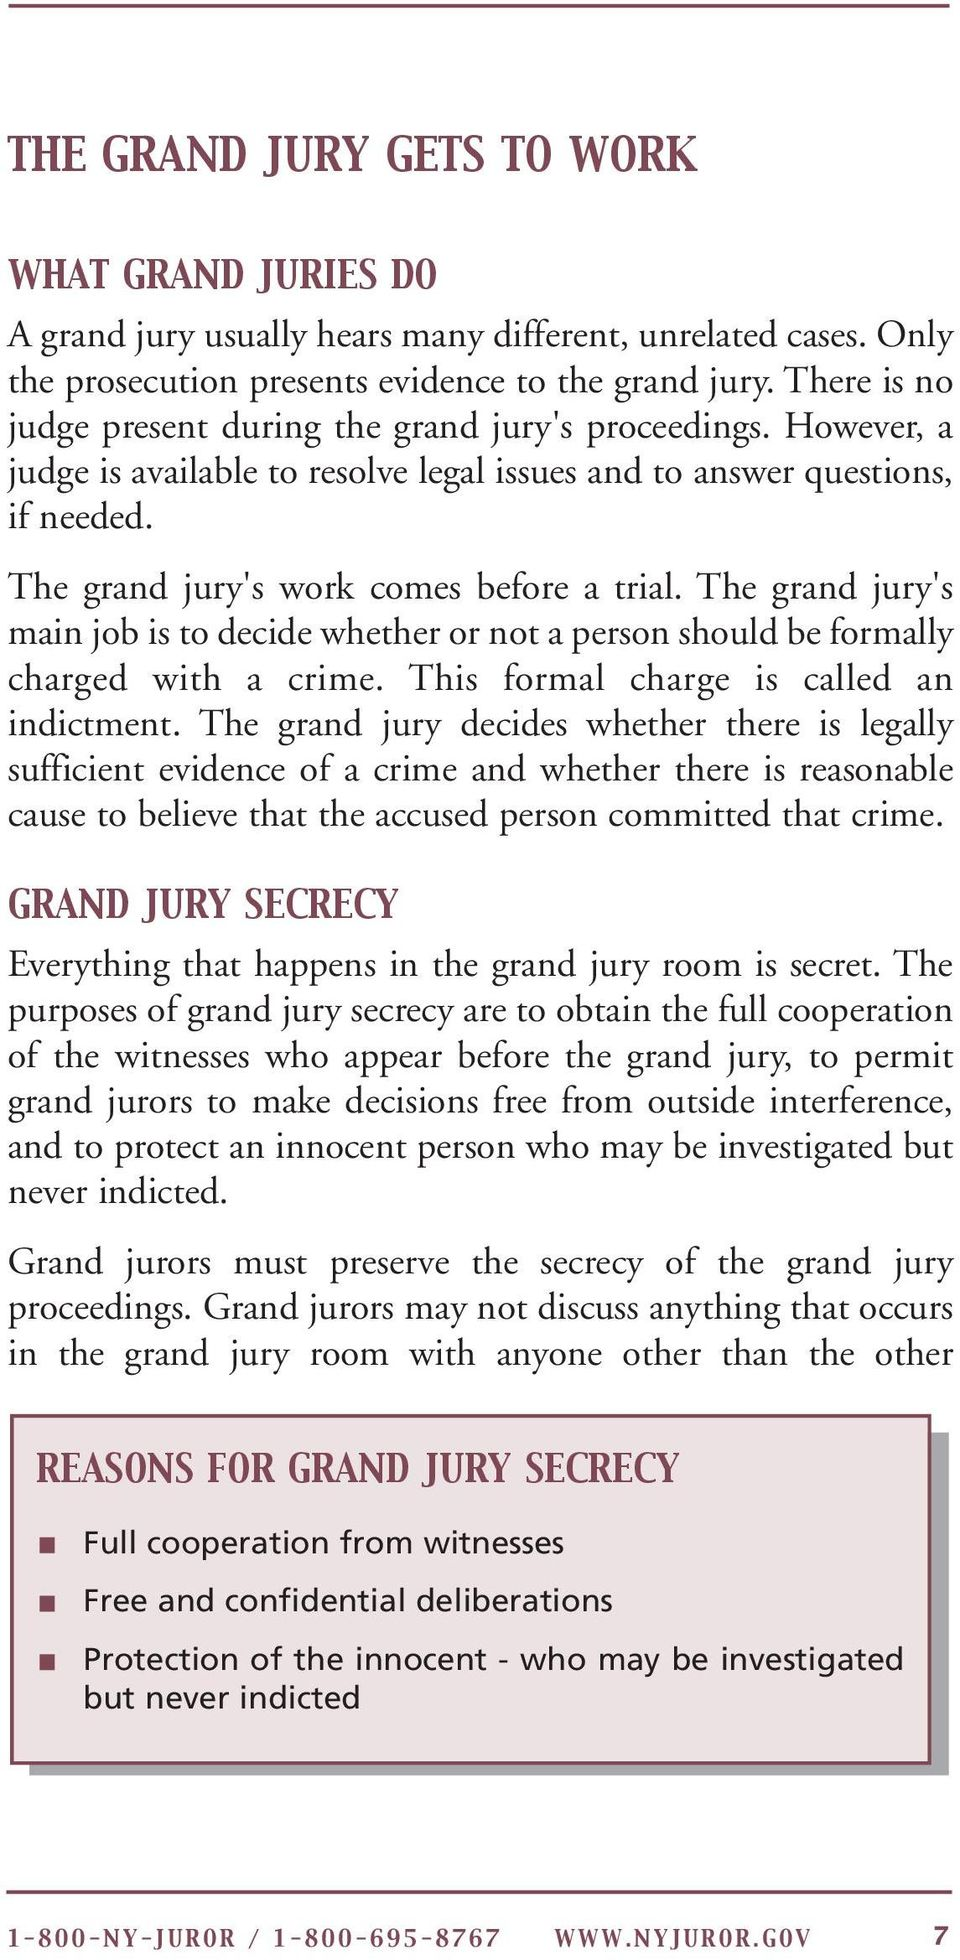 The grand jury's main job is to decide whether or not a person should be formally charged with a crime. This formal charge is called an indictment.